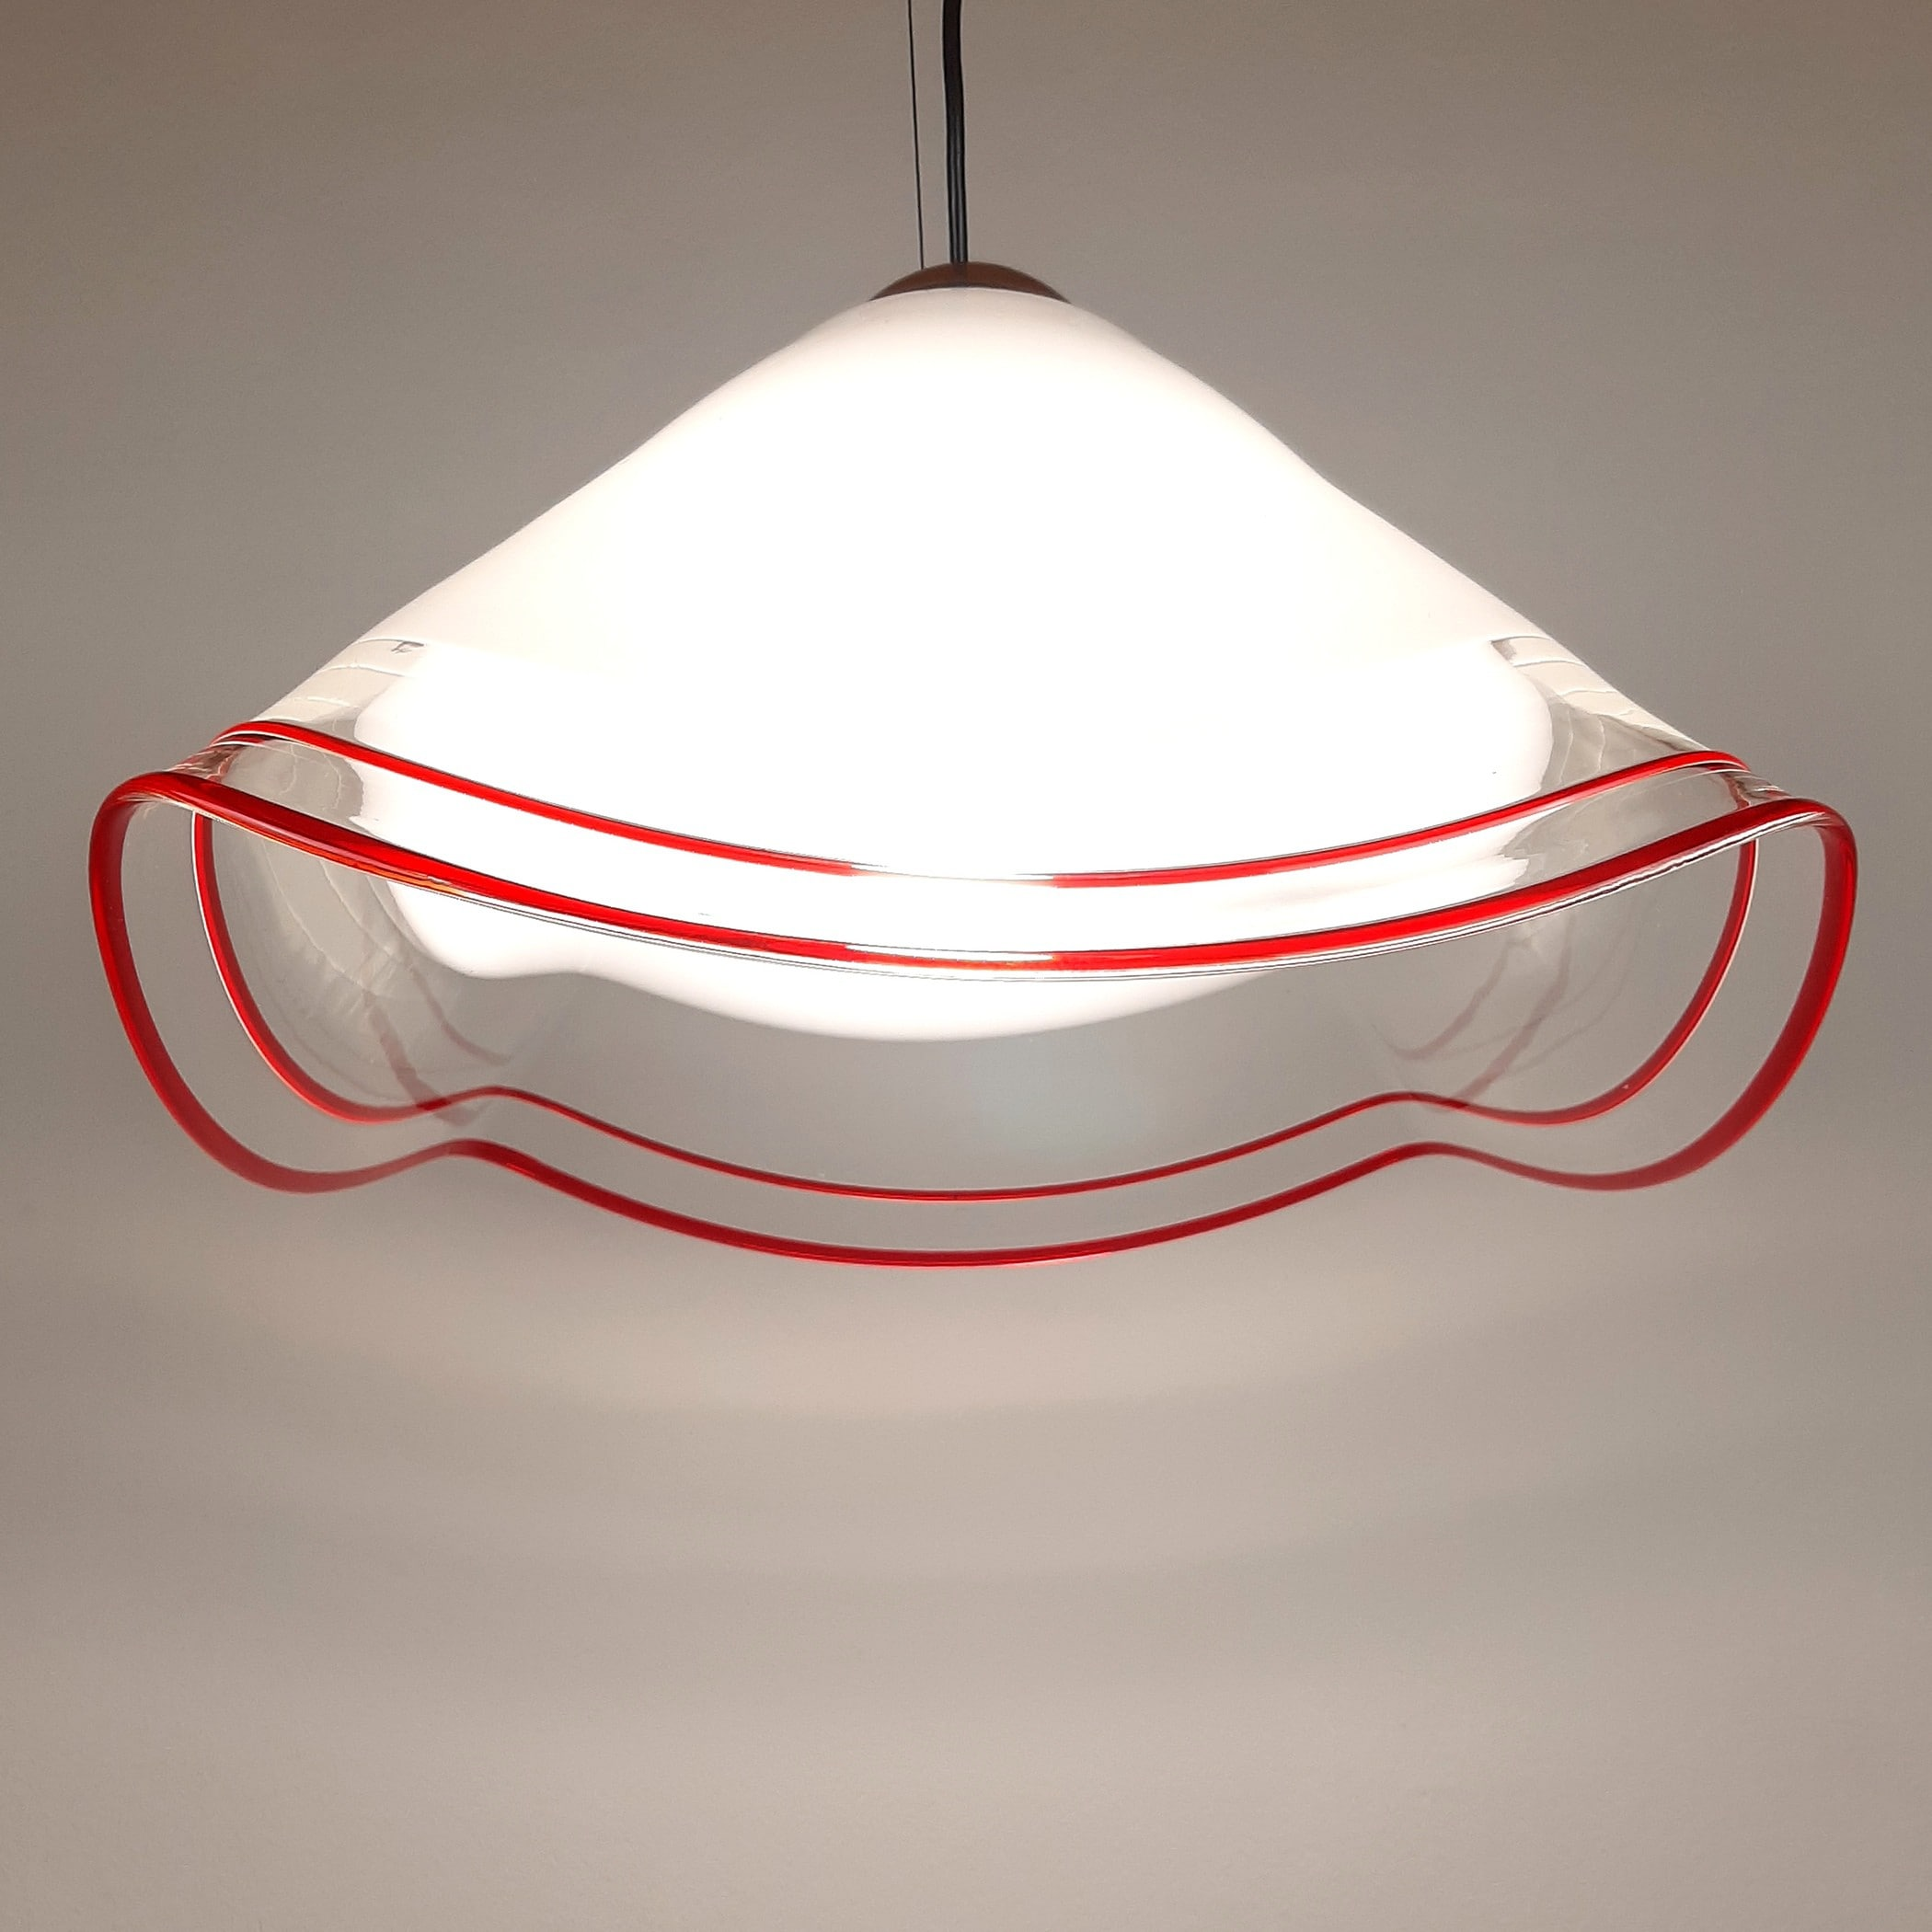 Retro murano glass pendant lamp by Renato Toso Italy '70s Mid-century Lighting White and Red Space Age